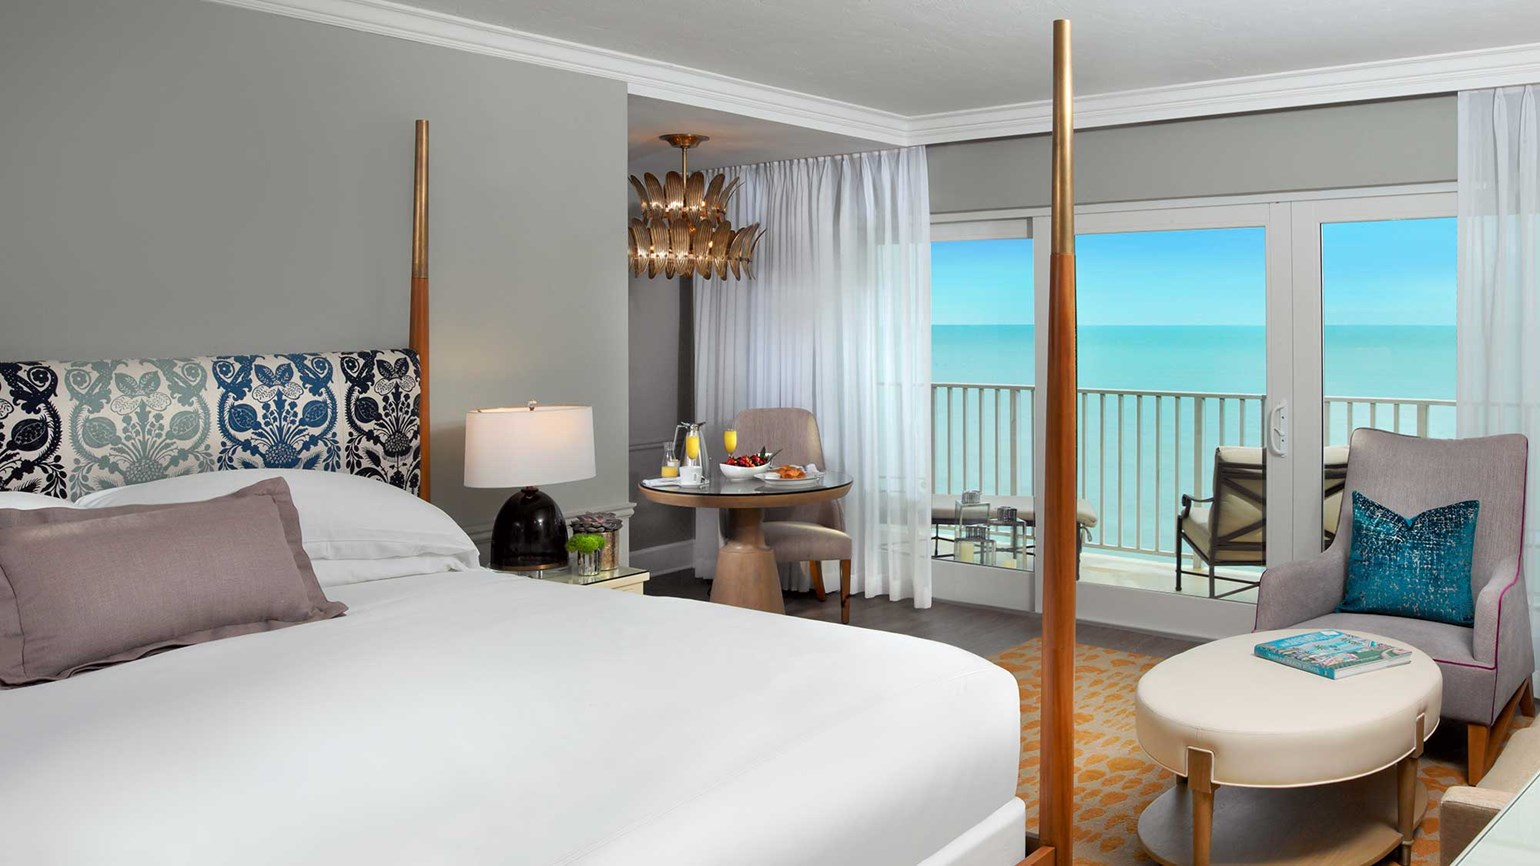 Renovations at Naples' La Playa Resort